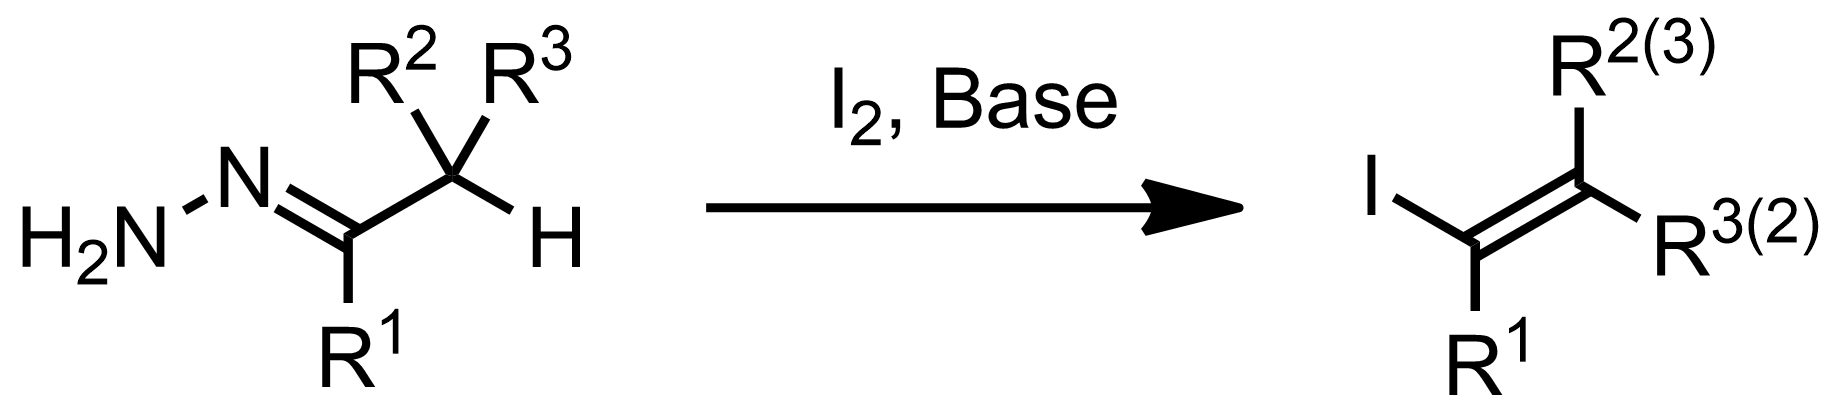 Schematic representation of the Barton Vinyl Iodide Synthesis.